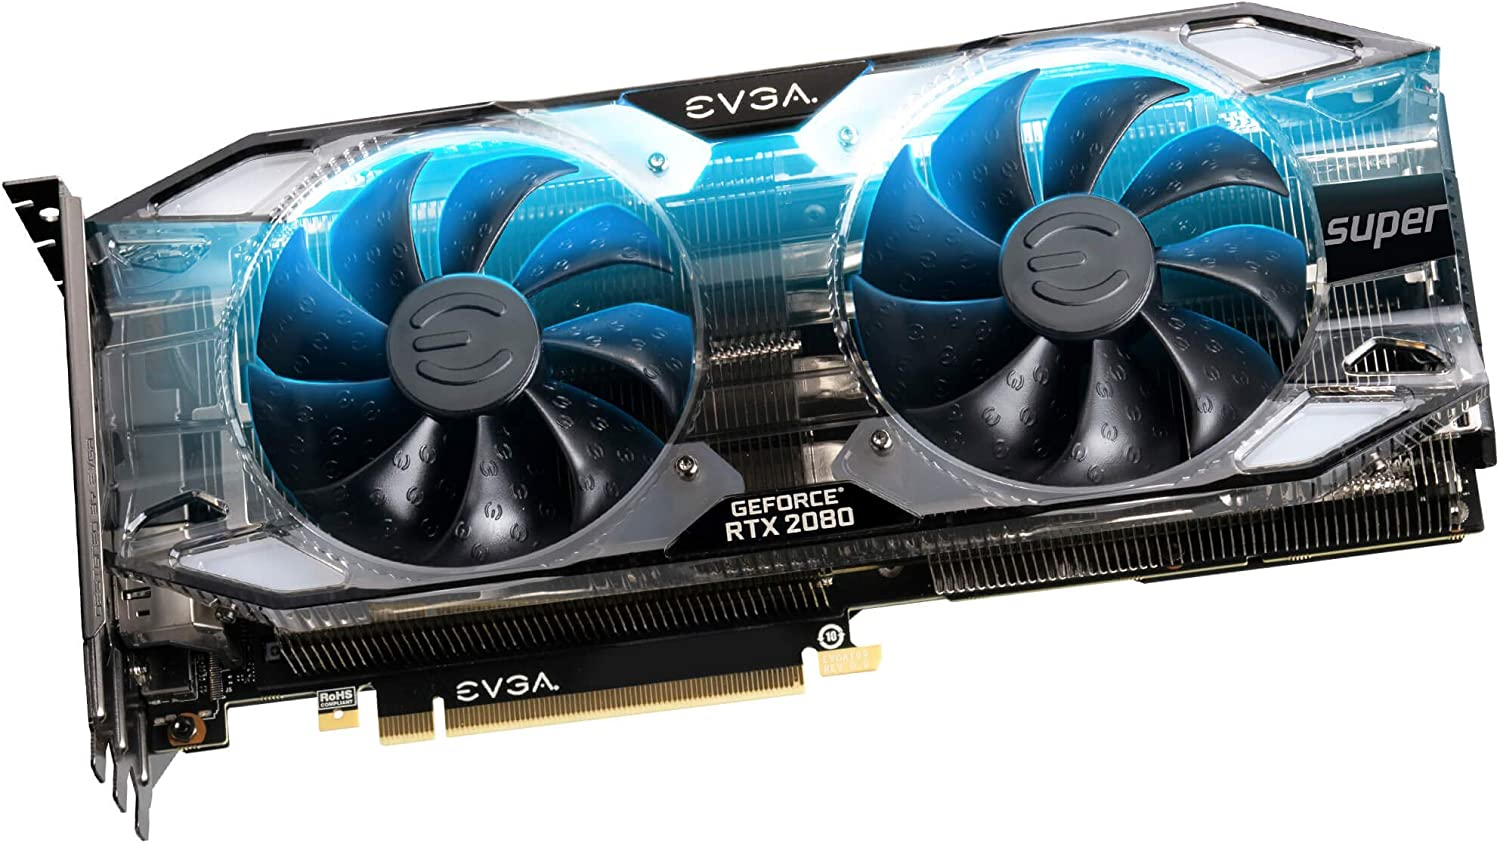 EVGA GeForce RTX 2080 Super XC Ultra, Overclocked, 2.75 Slot Extreme Cool Dual, 70C Gaming, RGB, Metal Backplate, 8GB GDDR6, 08G-P4-3183-KR